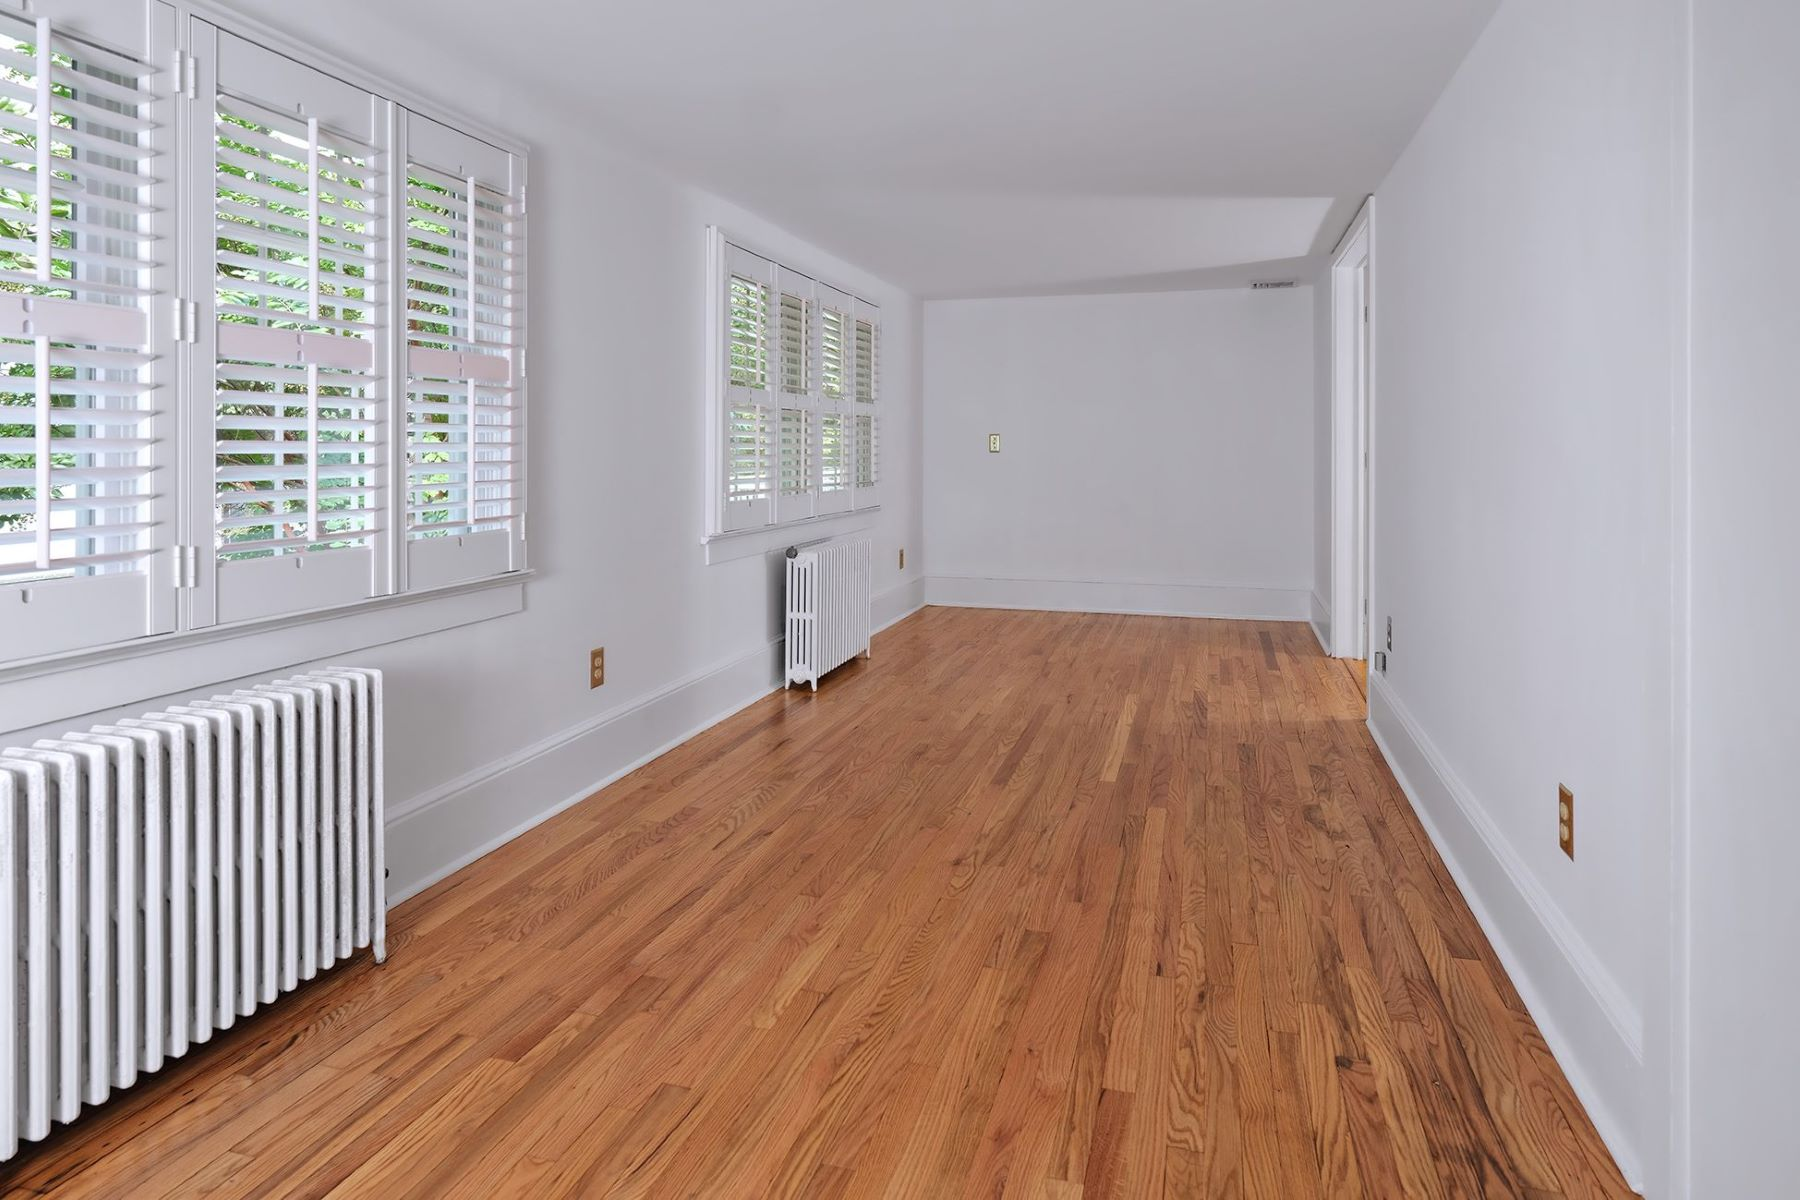 Additional photo for property listing at A Delightful Home Near Kunkel Park 111 King George Road, Pennington, New Jersey 08534 United States